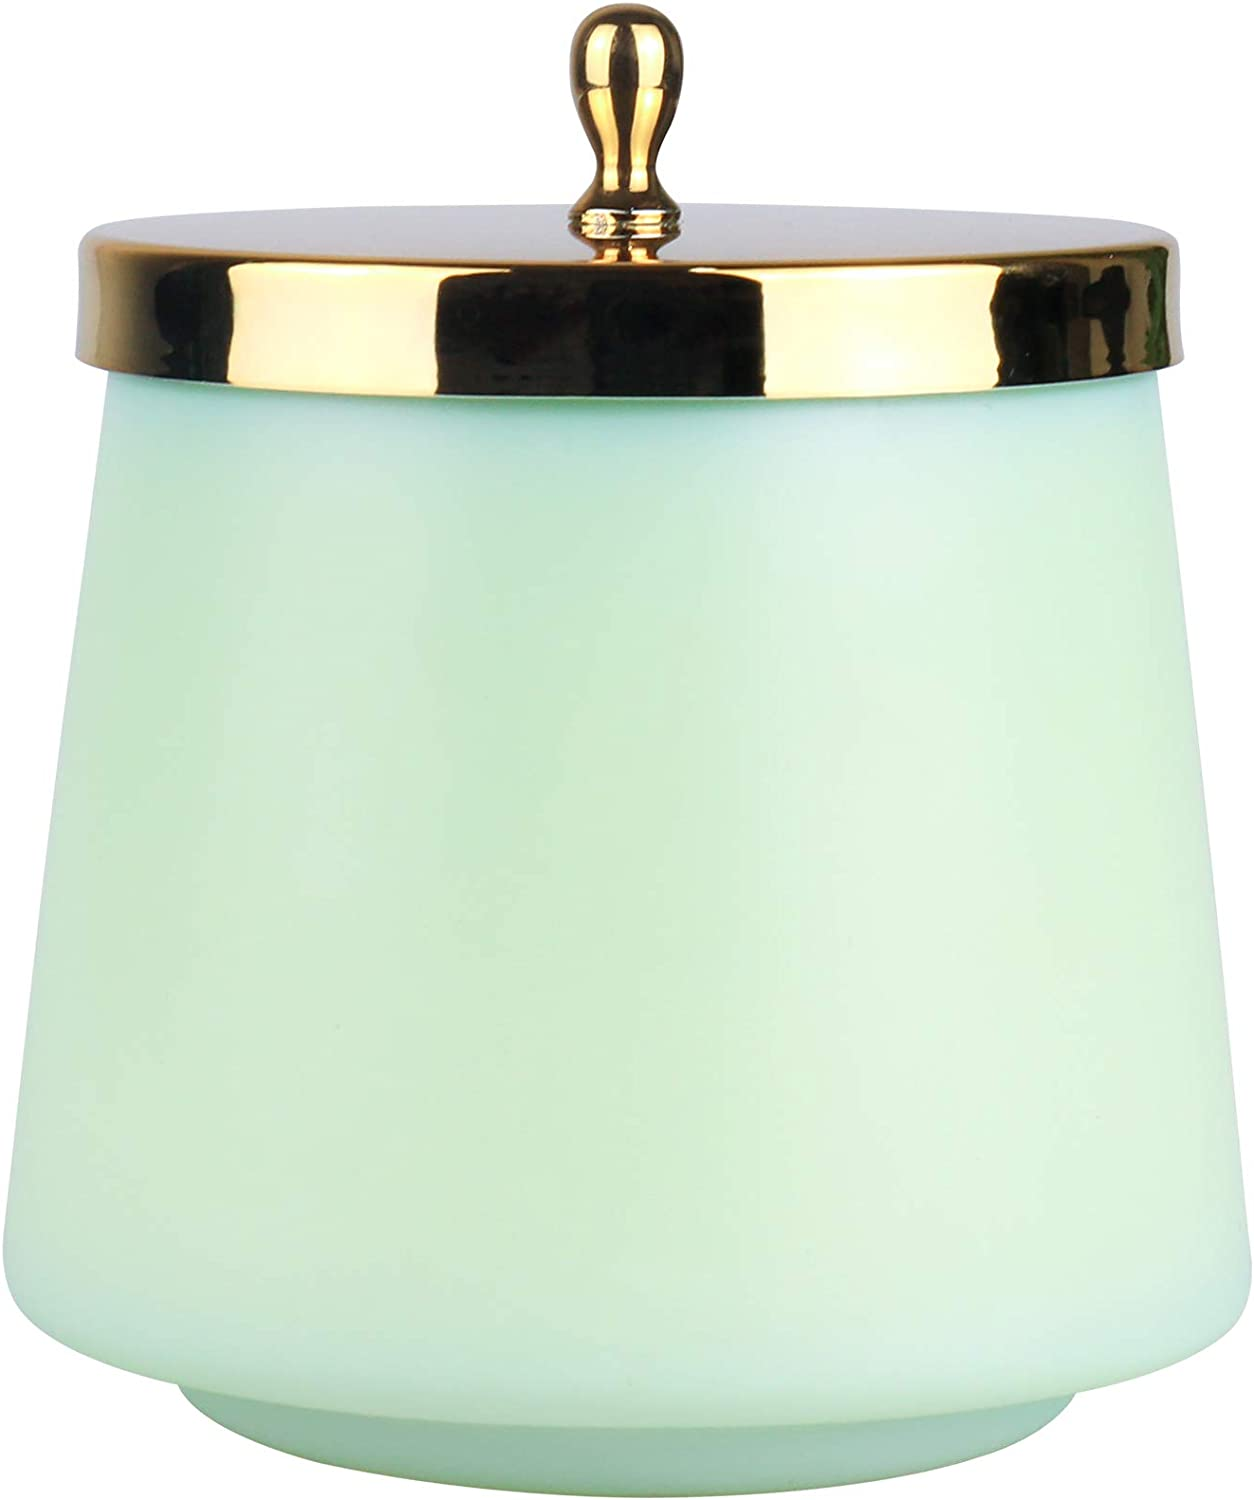 LA JOLIE MUSE Scented Candle Bergamot Mineral, Natural Wax Summer Candle for Home Scented, 75 Hours Long Burning for Relaxation, Oval Glass Jar, 12.3Oz